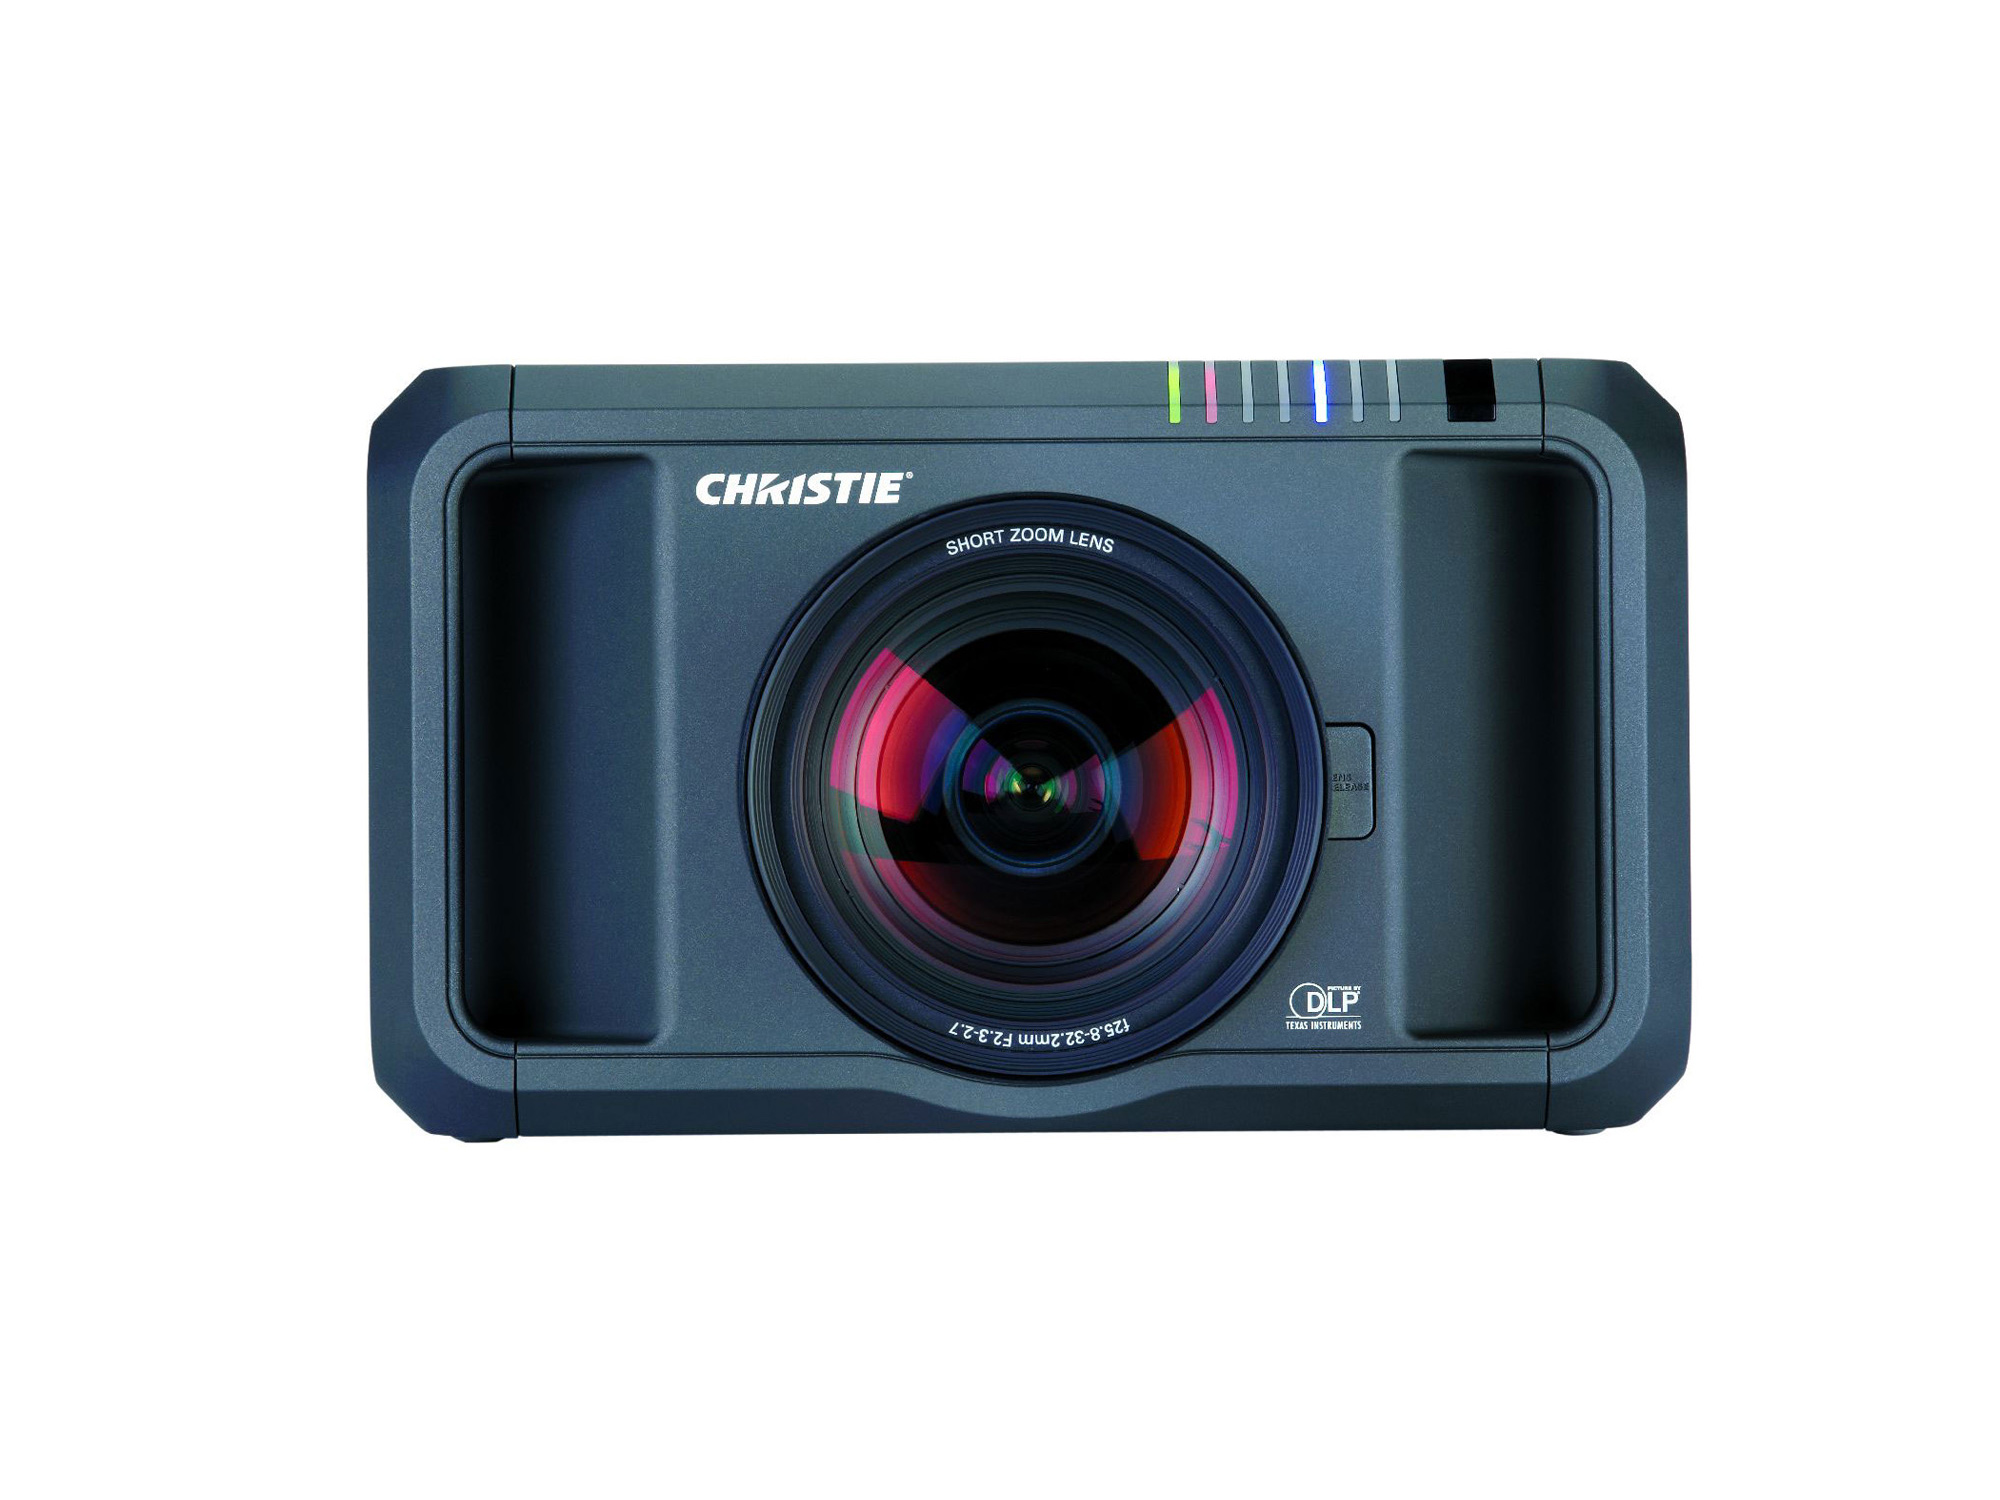 /globalassets/.catalog/products/images/christie-dhd700/gallery/christie-dhd700-1-chip-digital-projector-image4.jpg